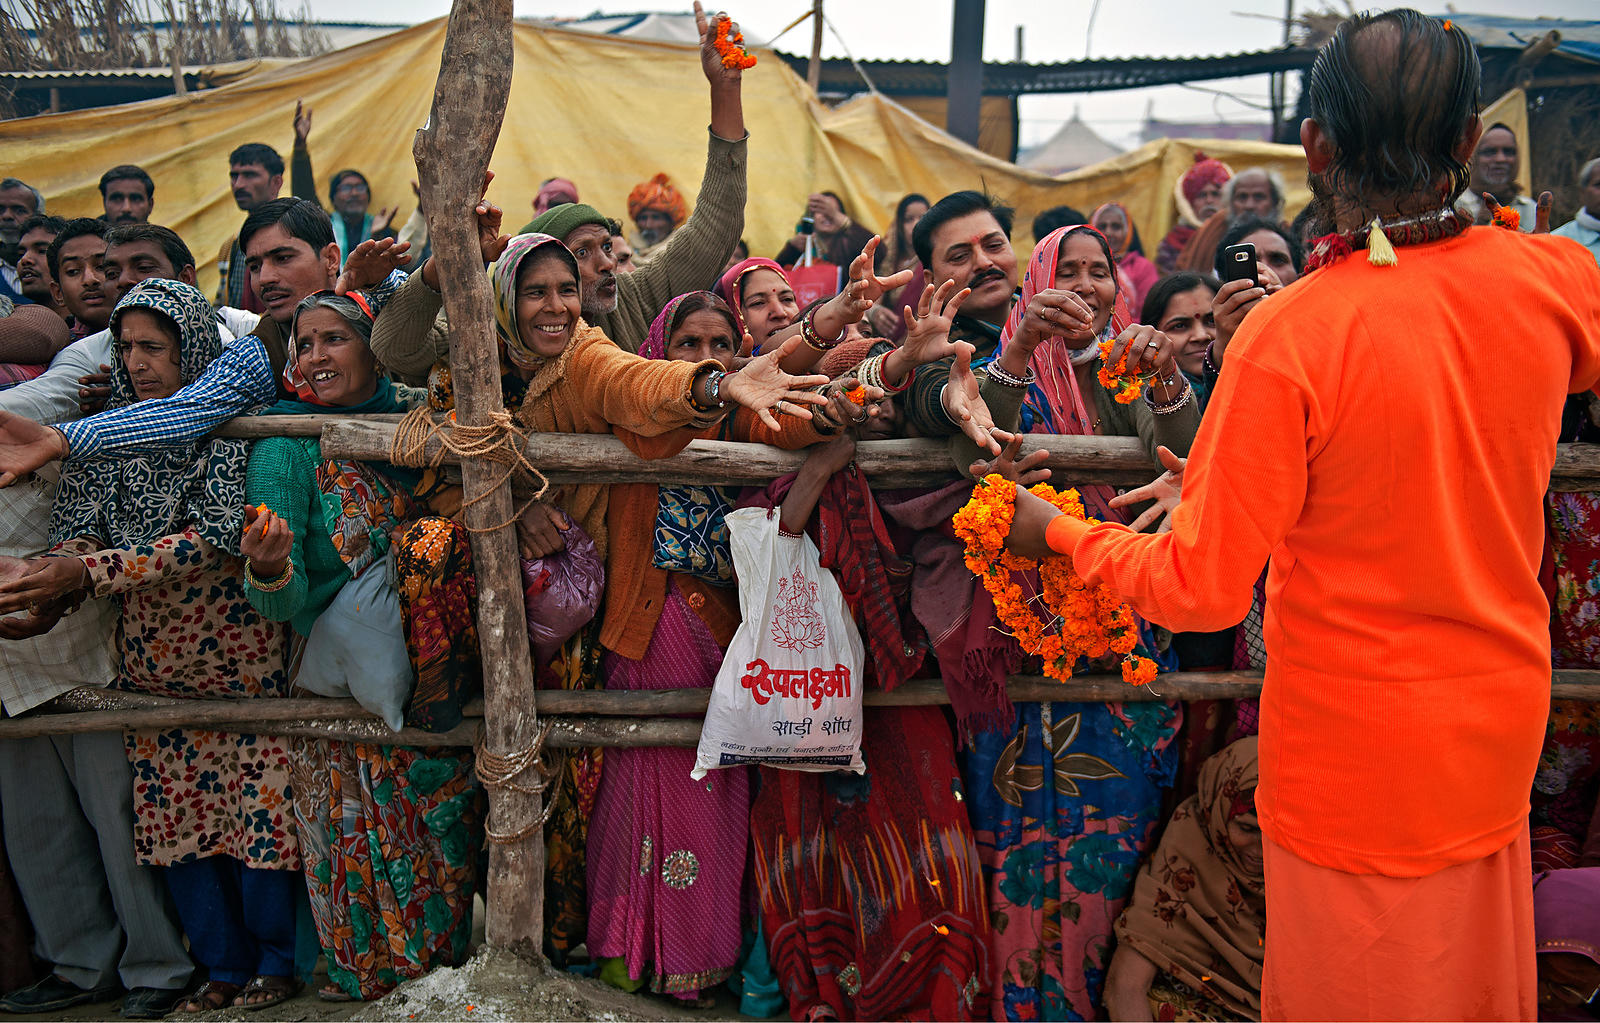 Pilgrims wait for their turn to get the blessings from the saint at the Kumbh Mela, Allahabad